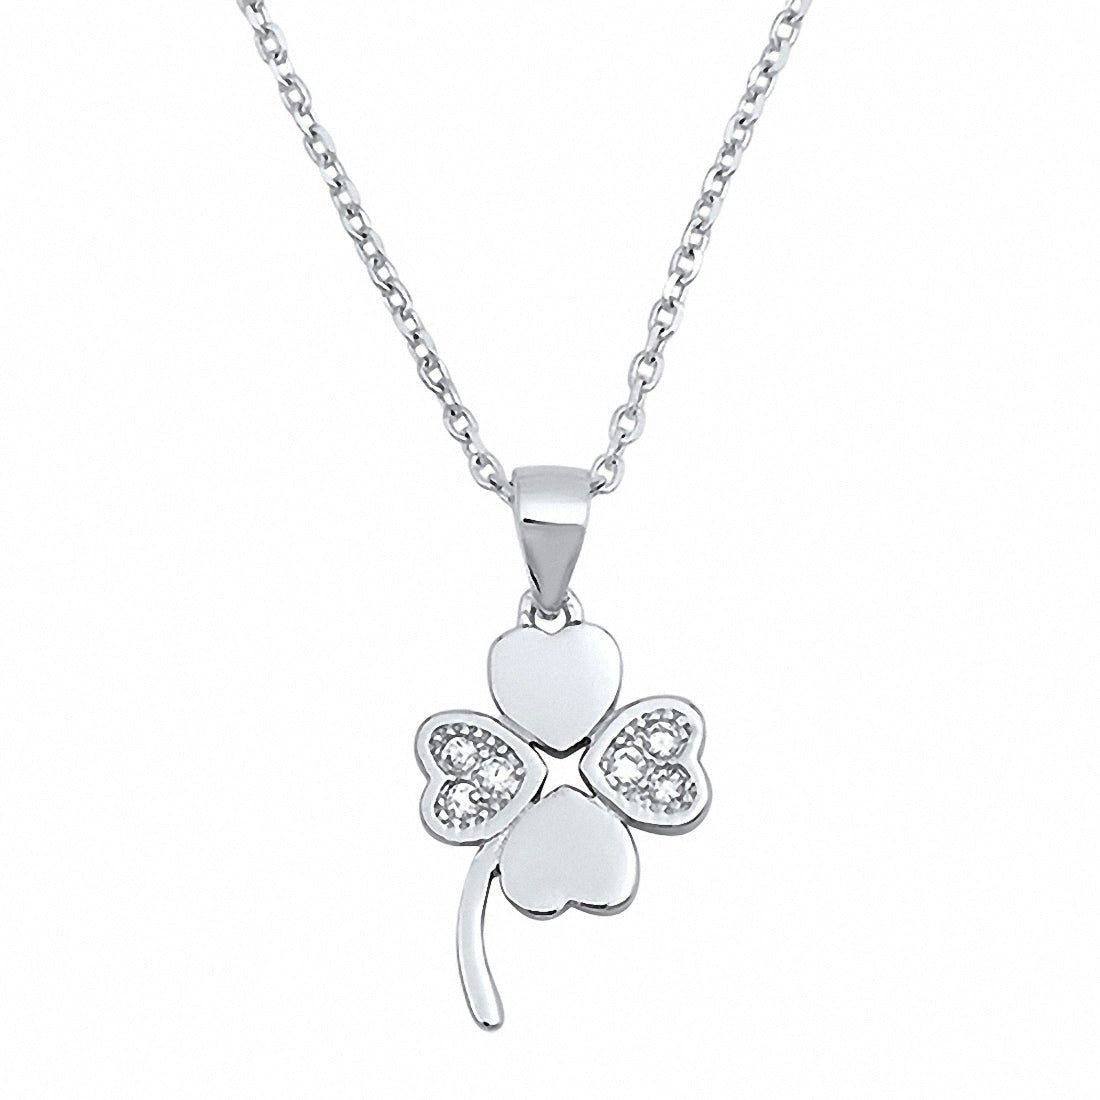 silver az pendant jewelry love day leaf four valentines clover gifts jn heart necklace appl lucky bling sterling